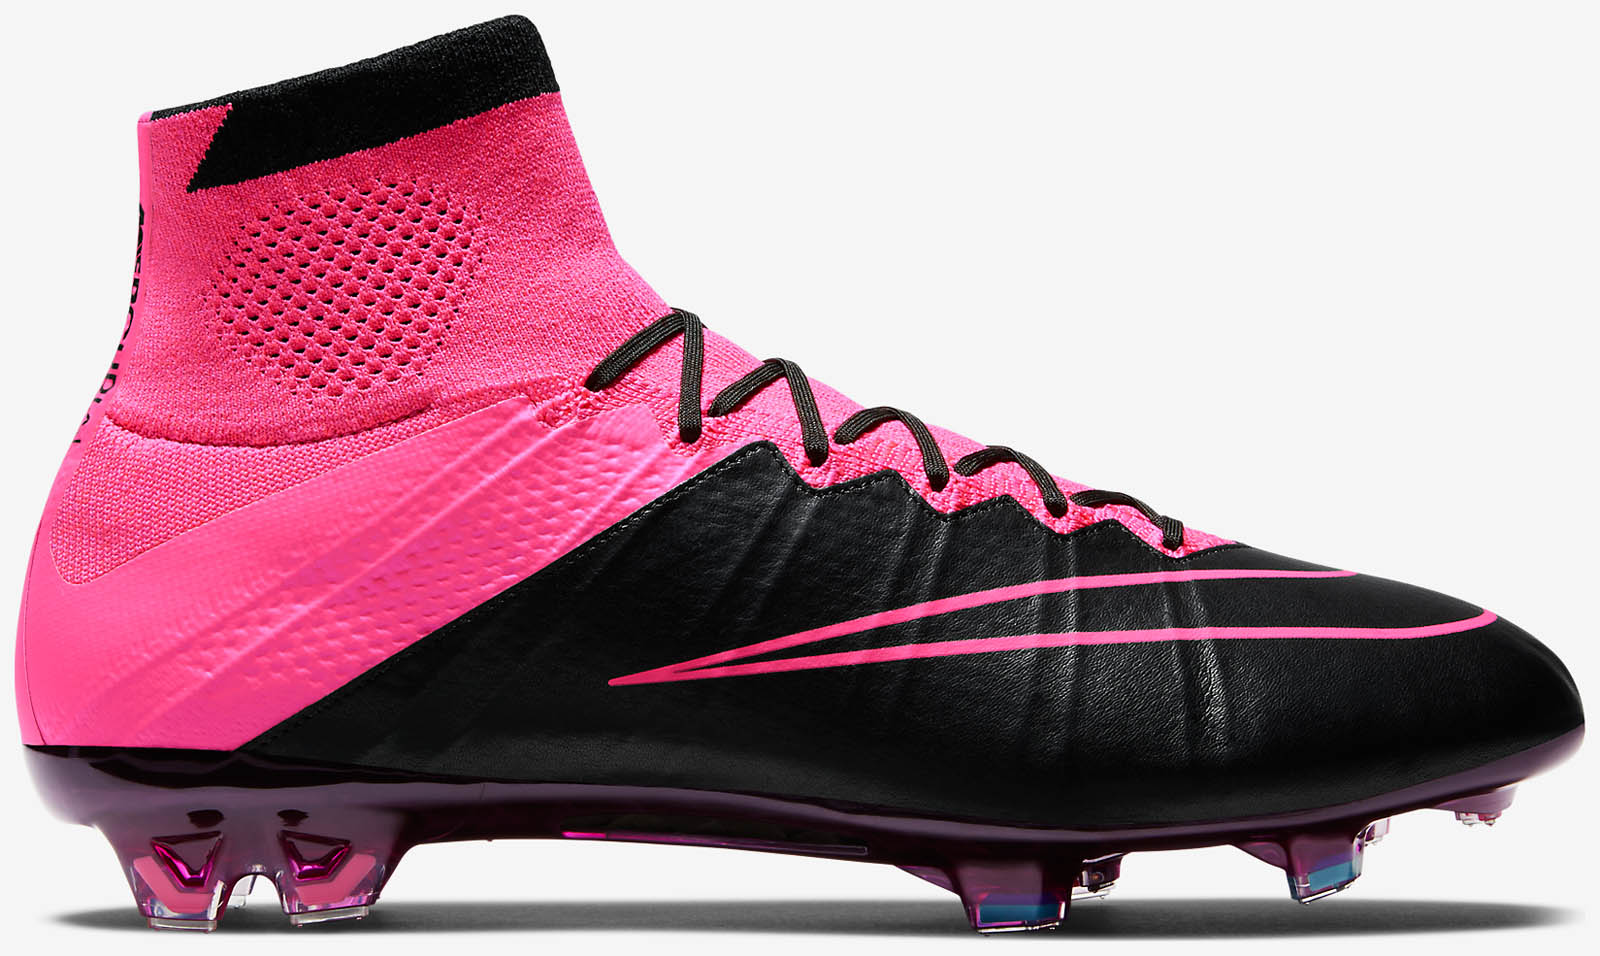 nike mercurial superfly 2015 leather boots released. Black Bedroom Furniture Sets. Home Design Ideas